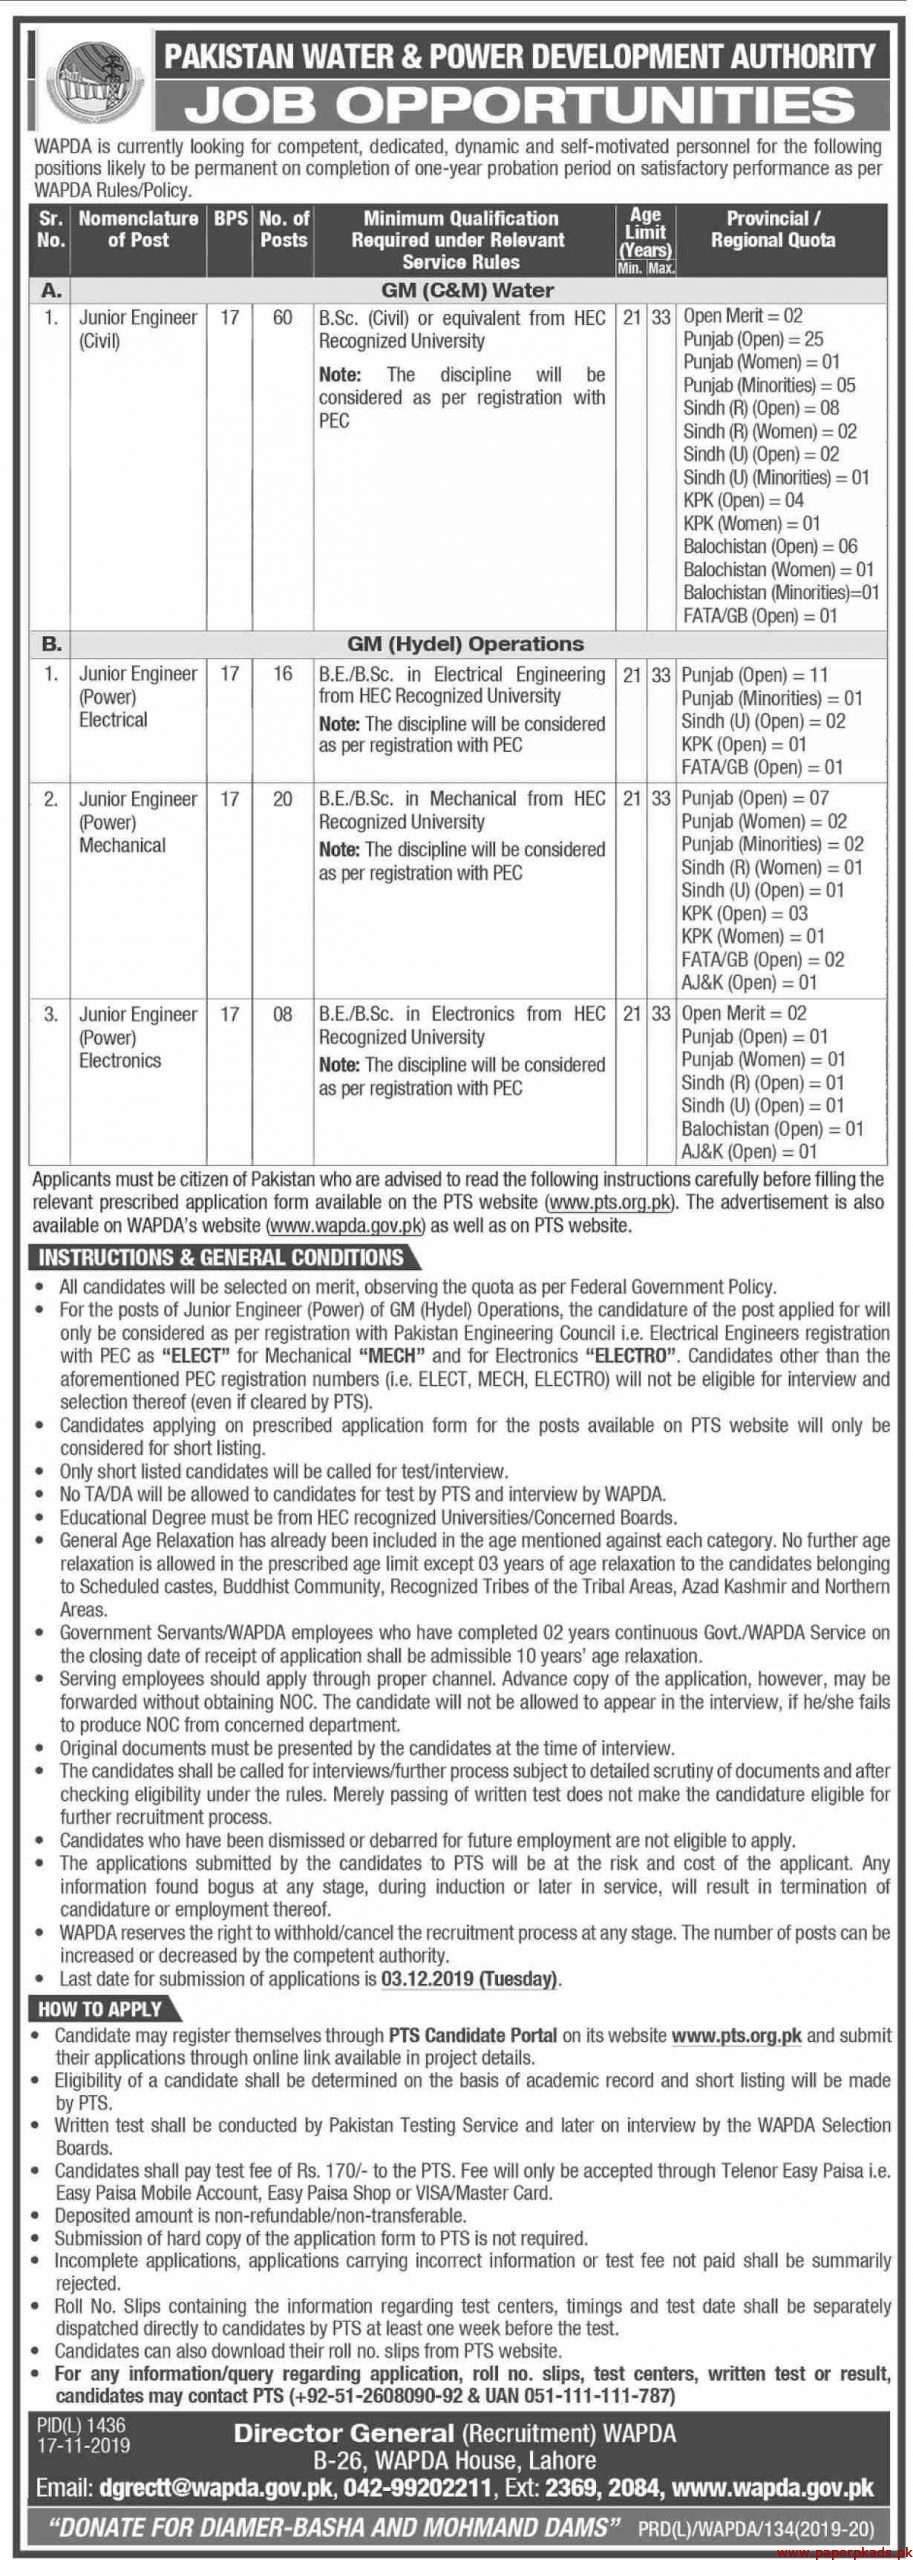 Pakistan Water & Power Development Authority WAPDA Jobs 2019 Latest